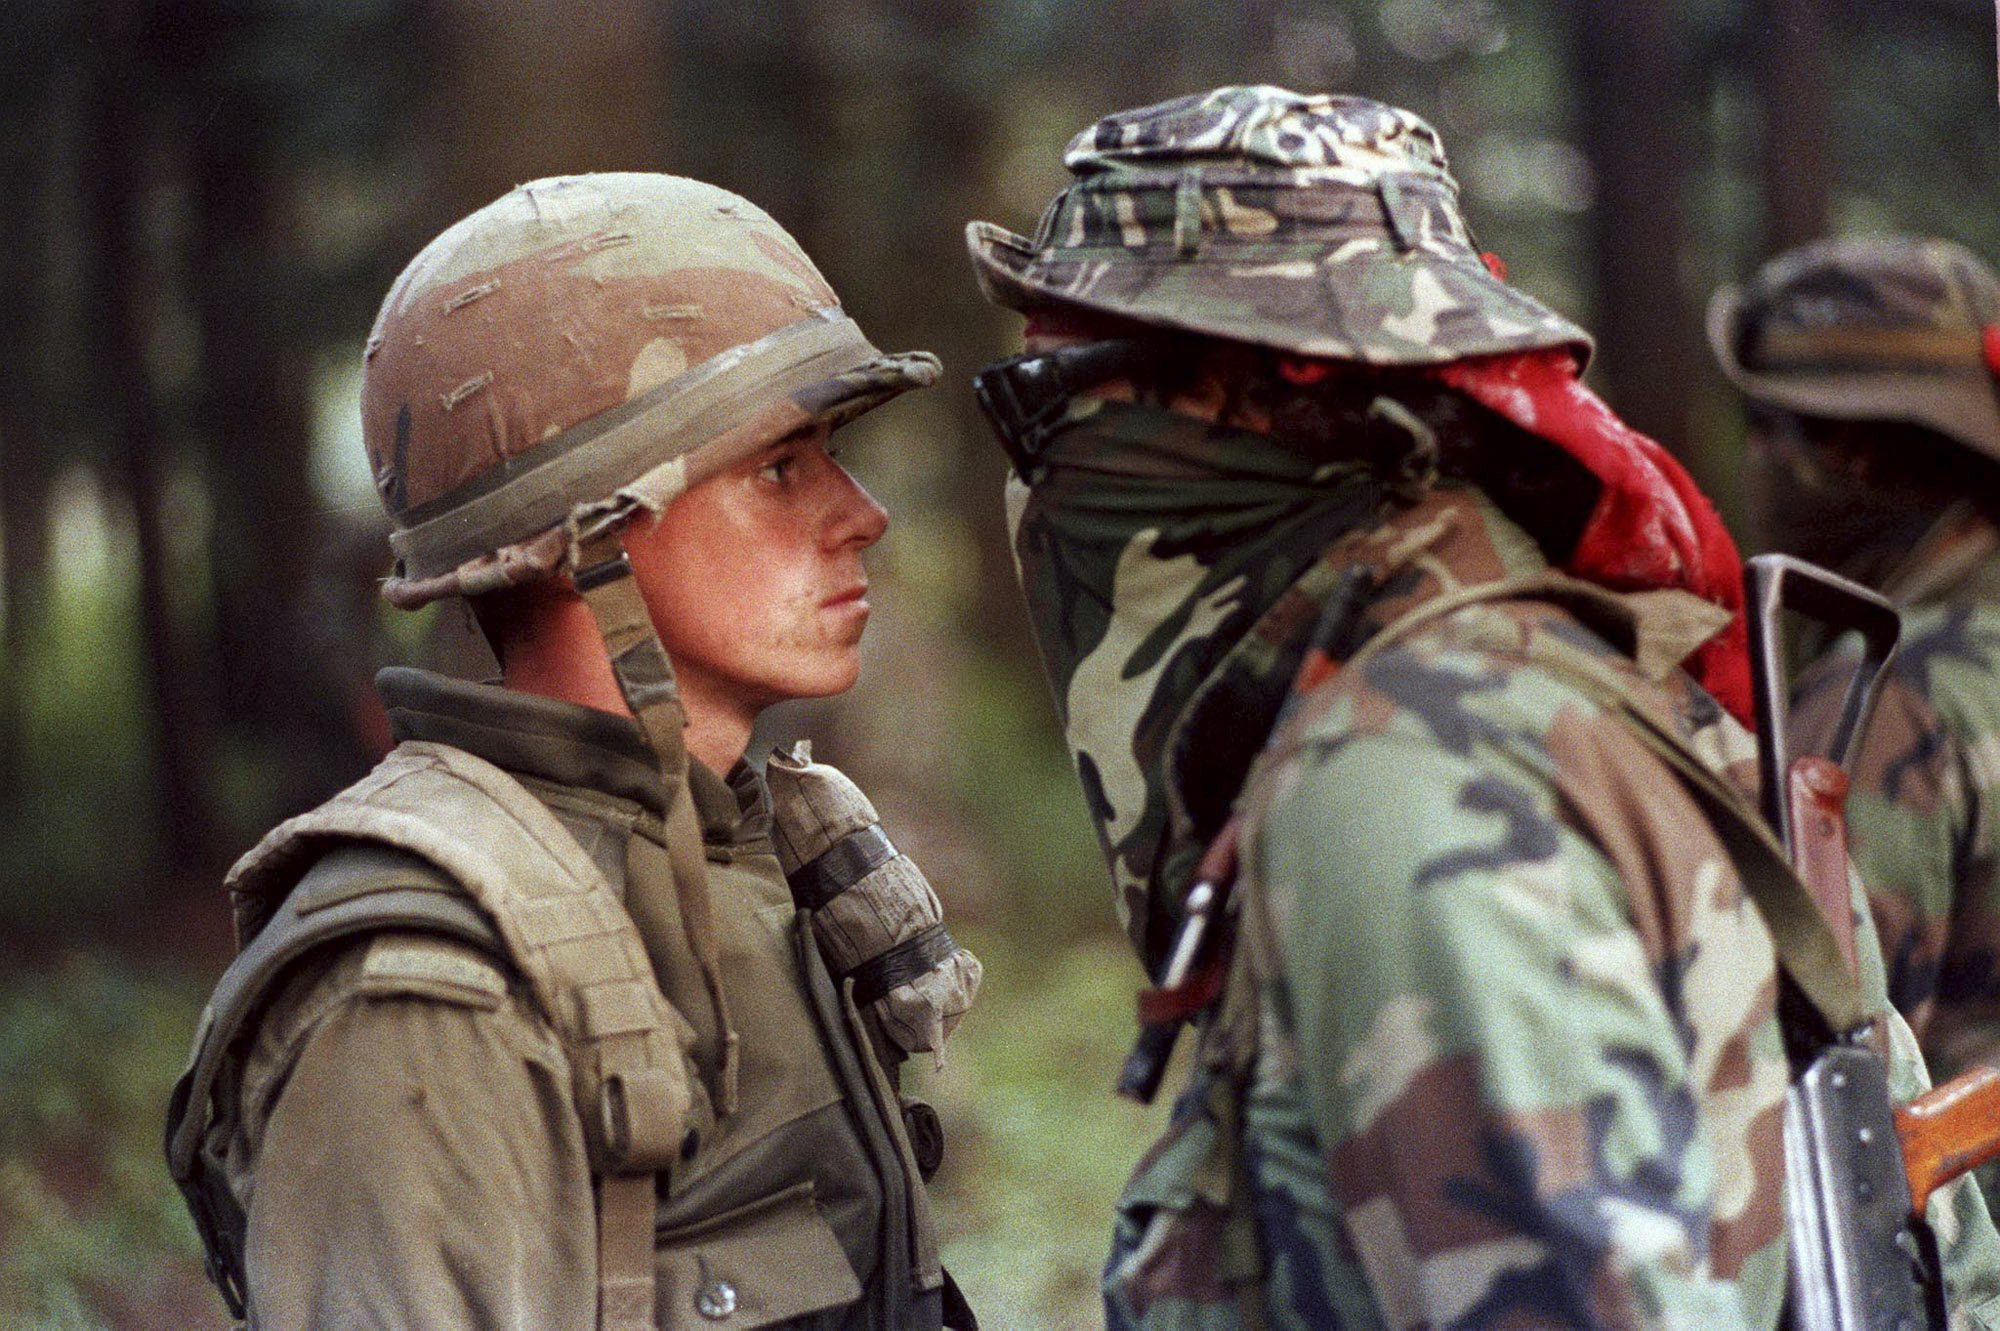 Canadian soldier stands facing indigenous protester with a bandana and sunglasses covering his face.